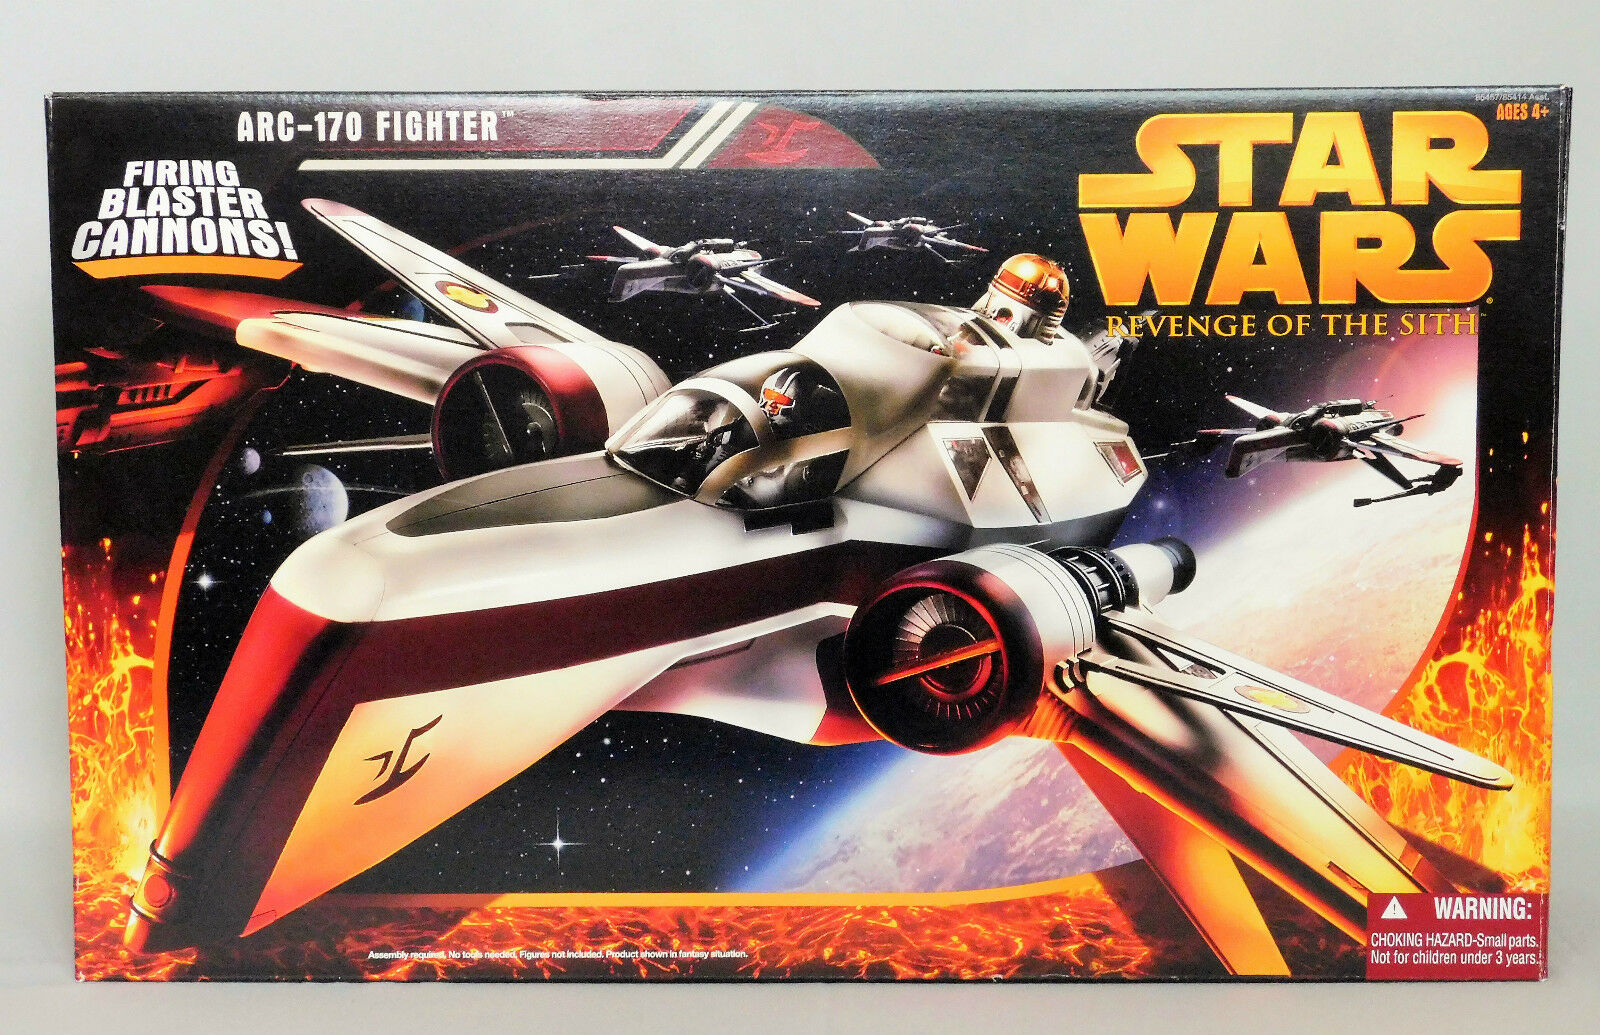 redS ARC-170 FIGHTER SHIP Star Wars Revenge of the Sith FIRING CANNONS _NRFB